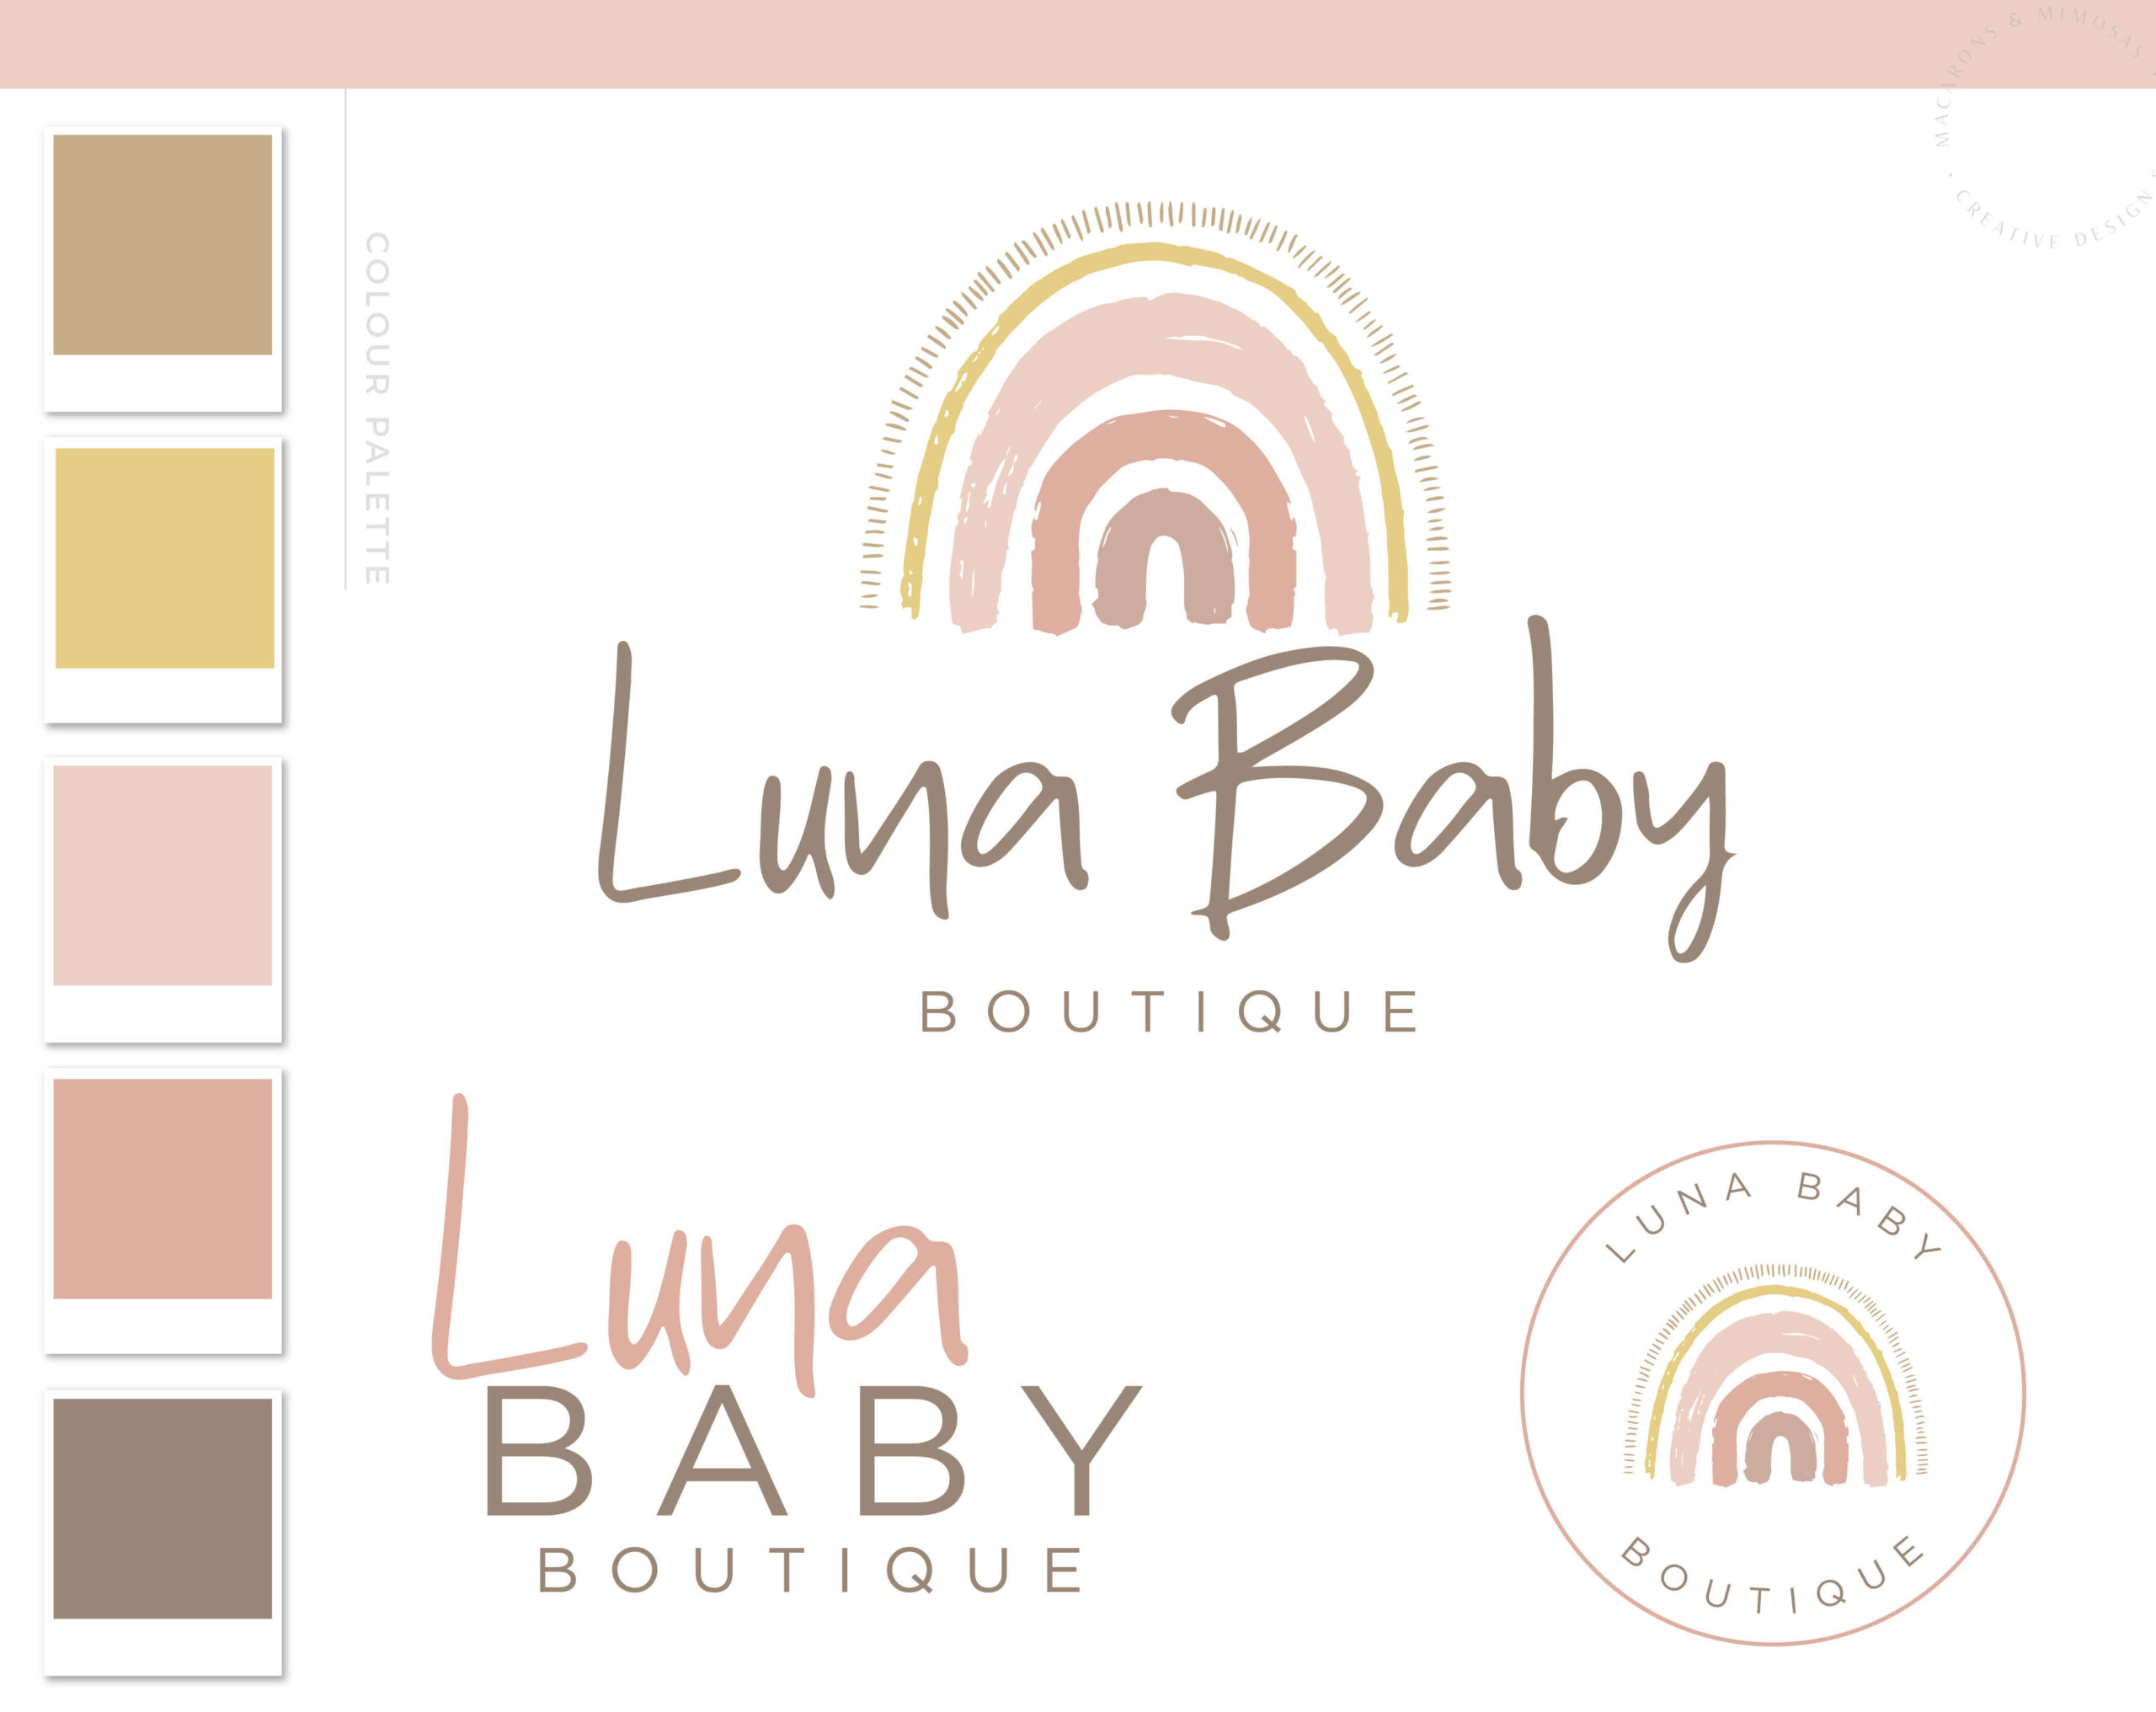 Rainbow Logo Design, Boho Baby Boutique Logo and Watermark, Photography Branding Kit, Premade Logo, Cute Kids Logo Branding